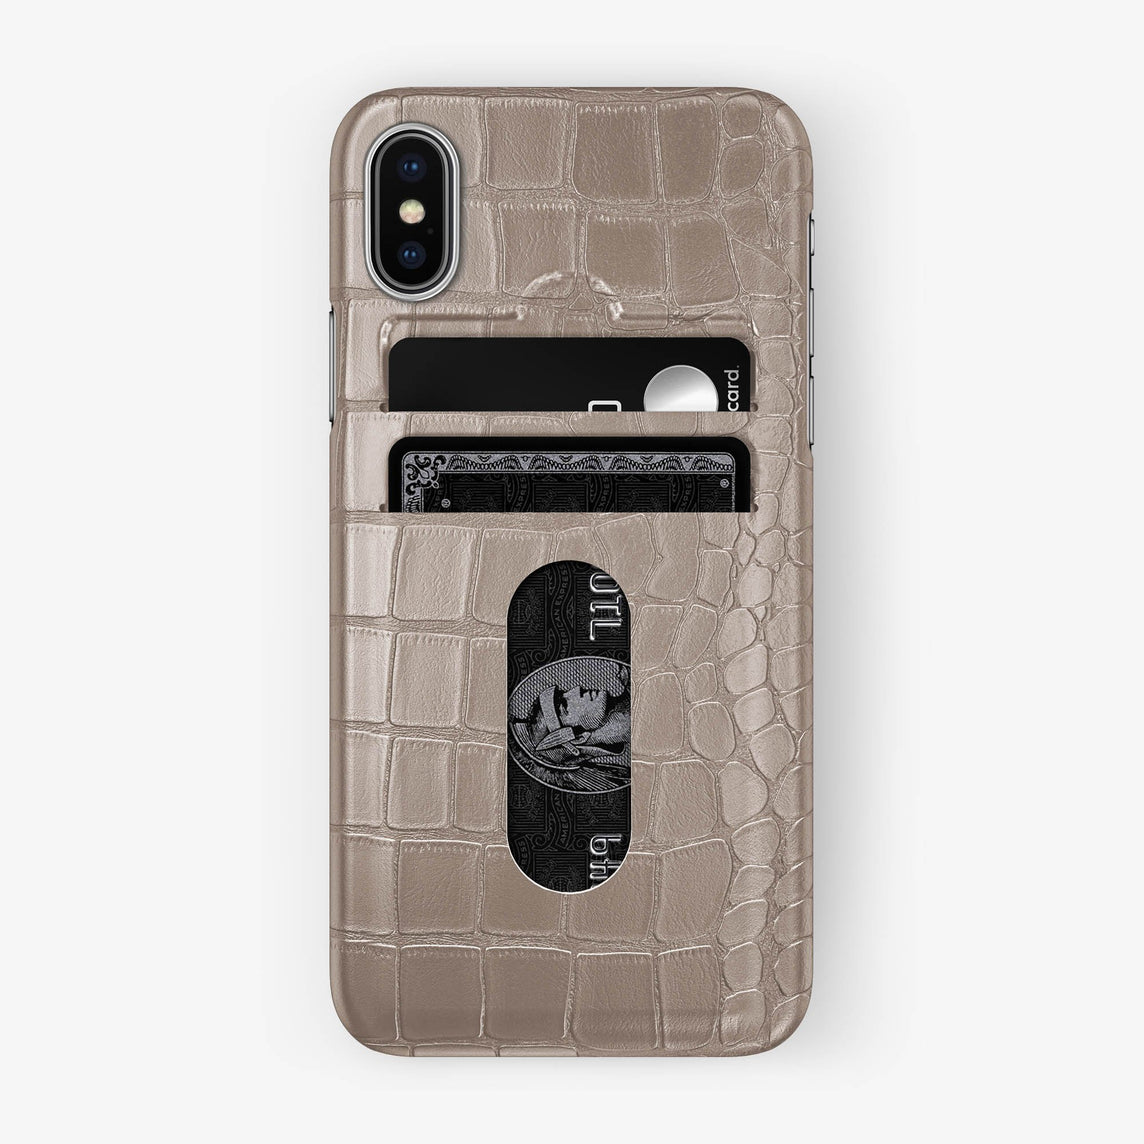 Alligator Card Holder Case iPhone X/Xs | Latte - Stainless Steel - Hadoro